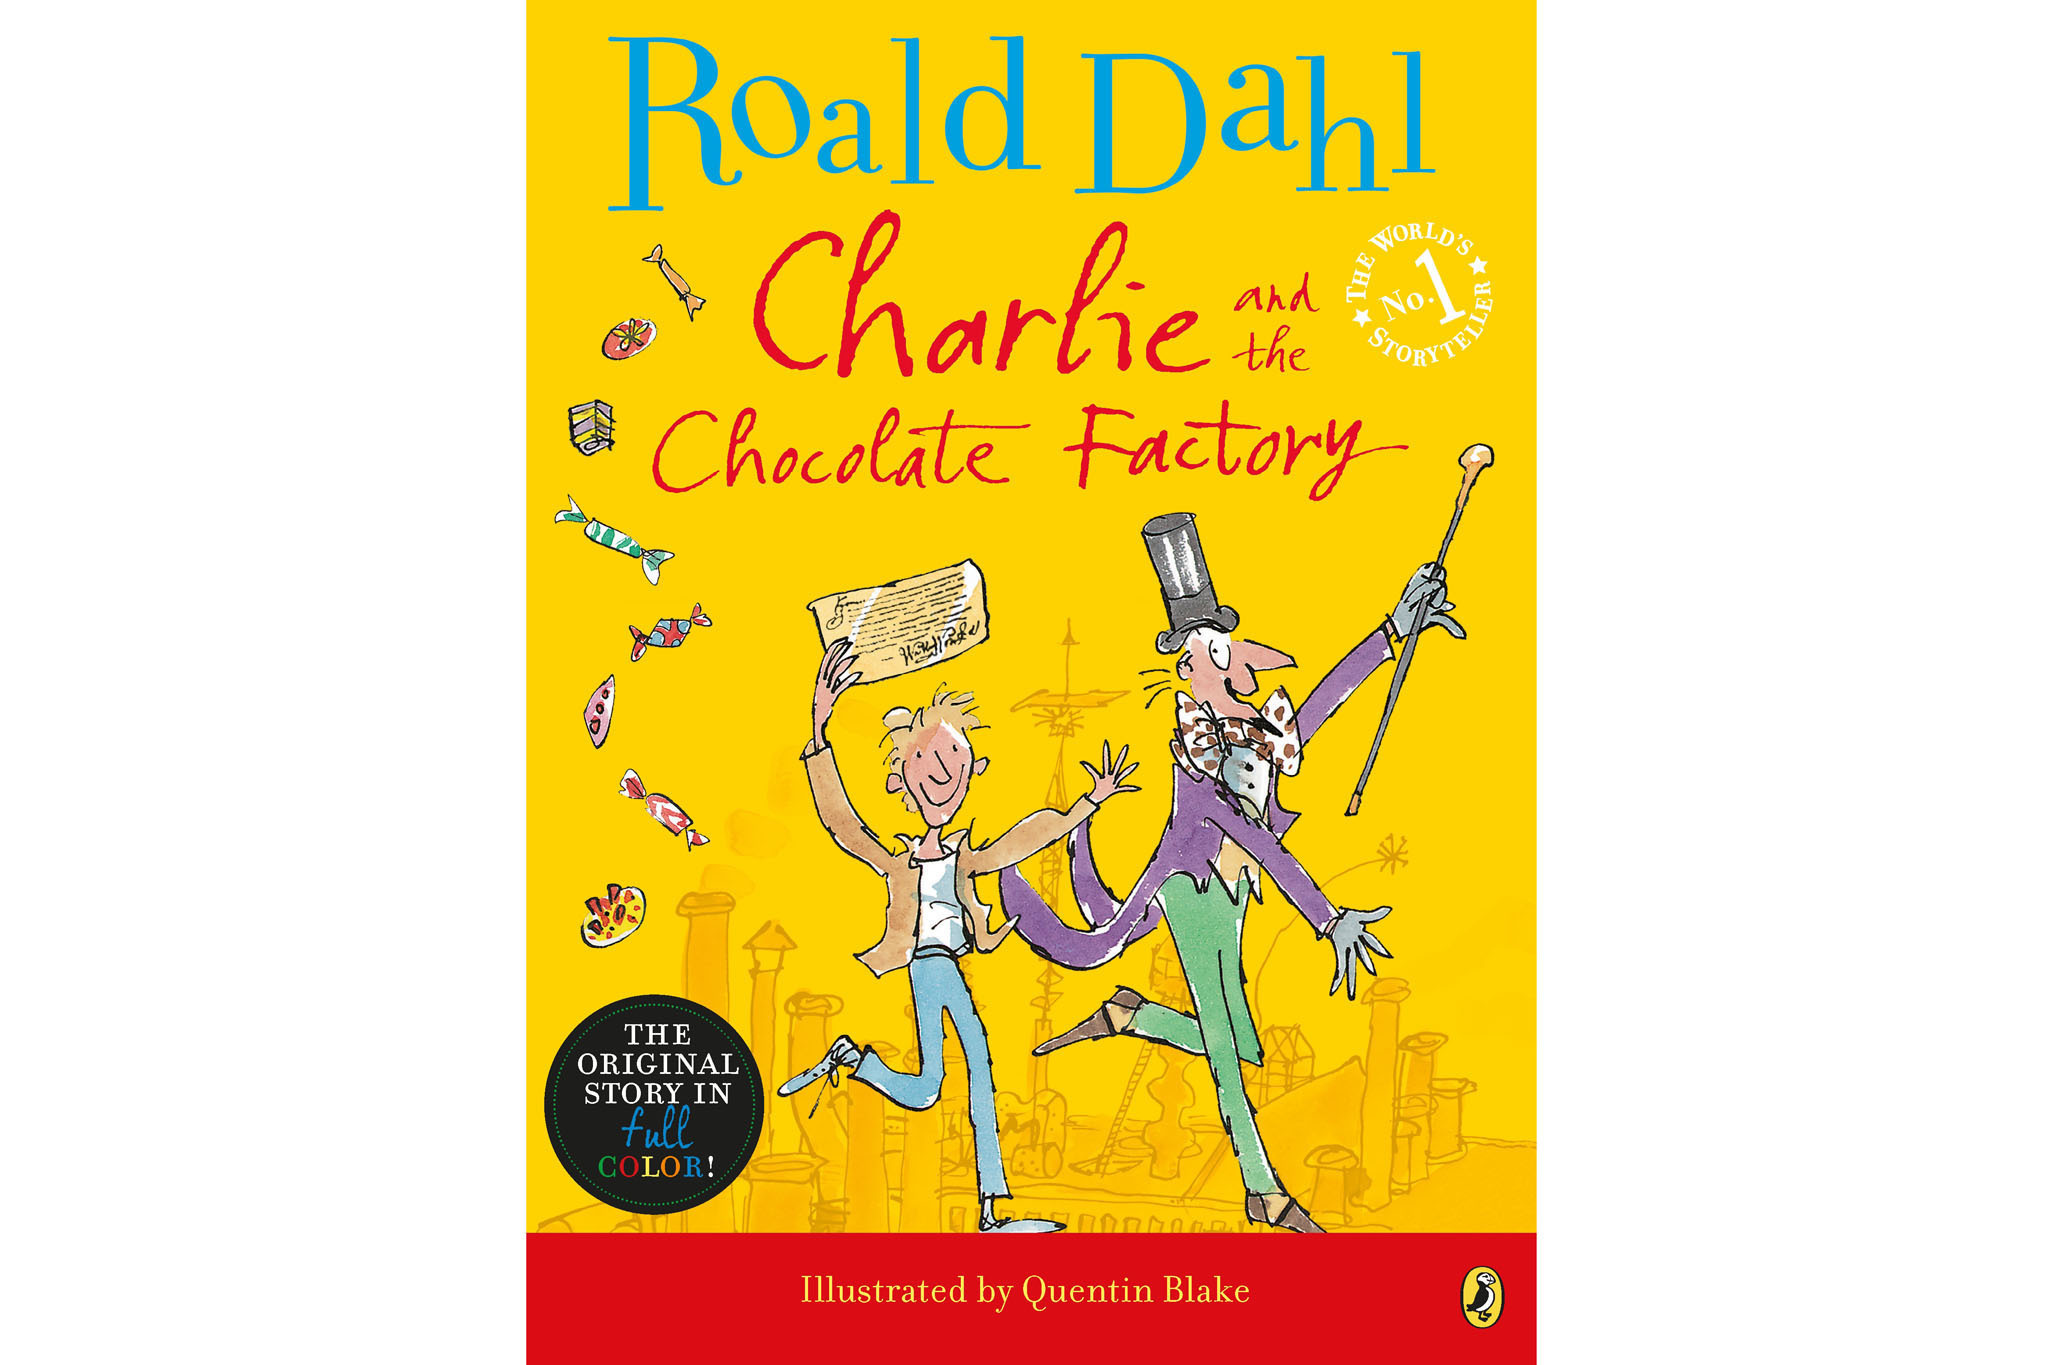 100 best children's books: Charlie and the Chocolate Factory